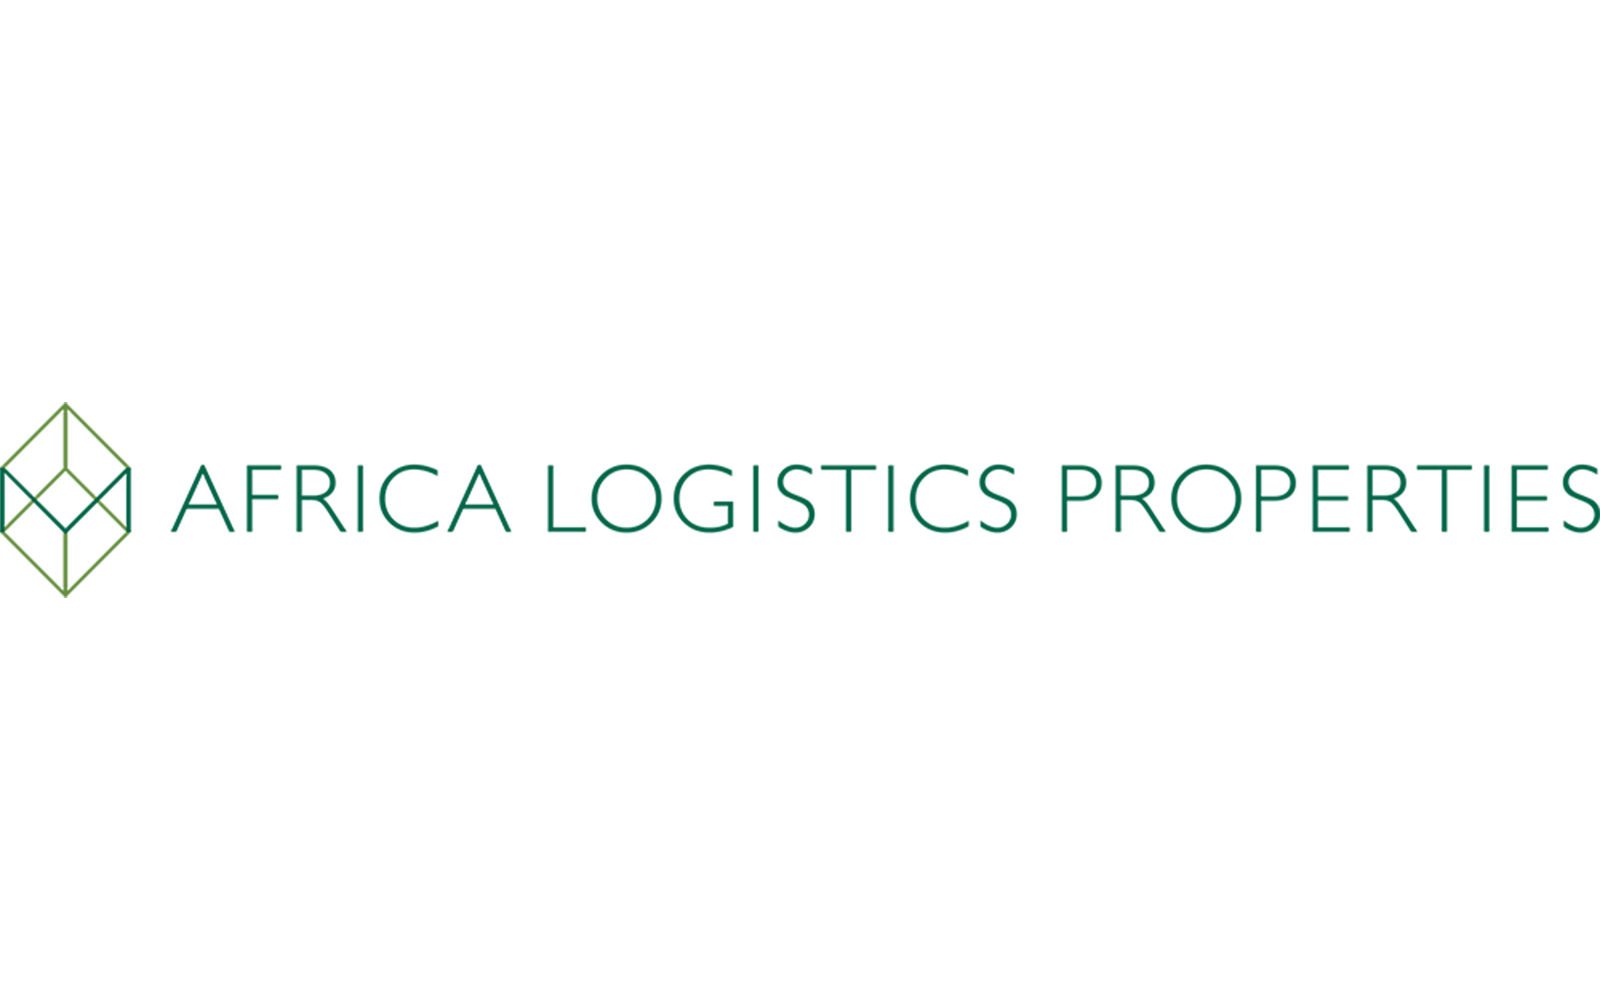 Africa Logistics Property